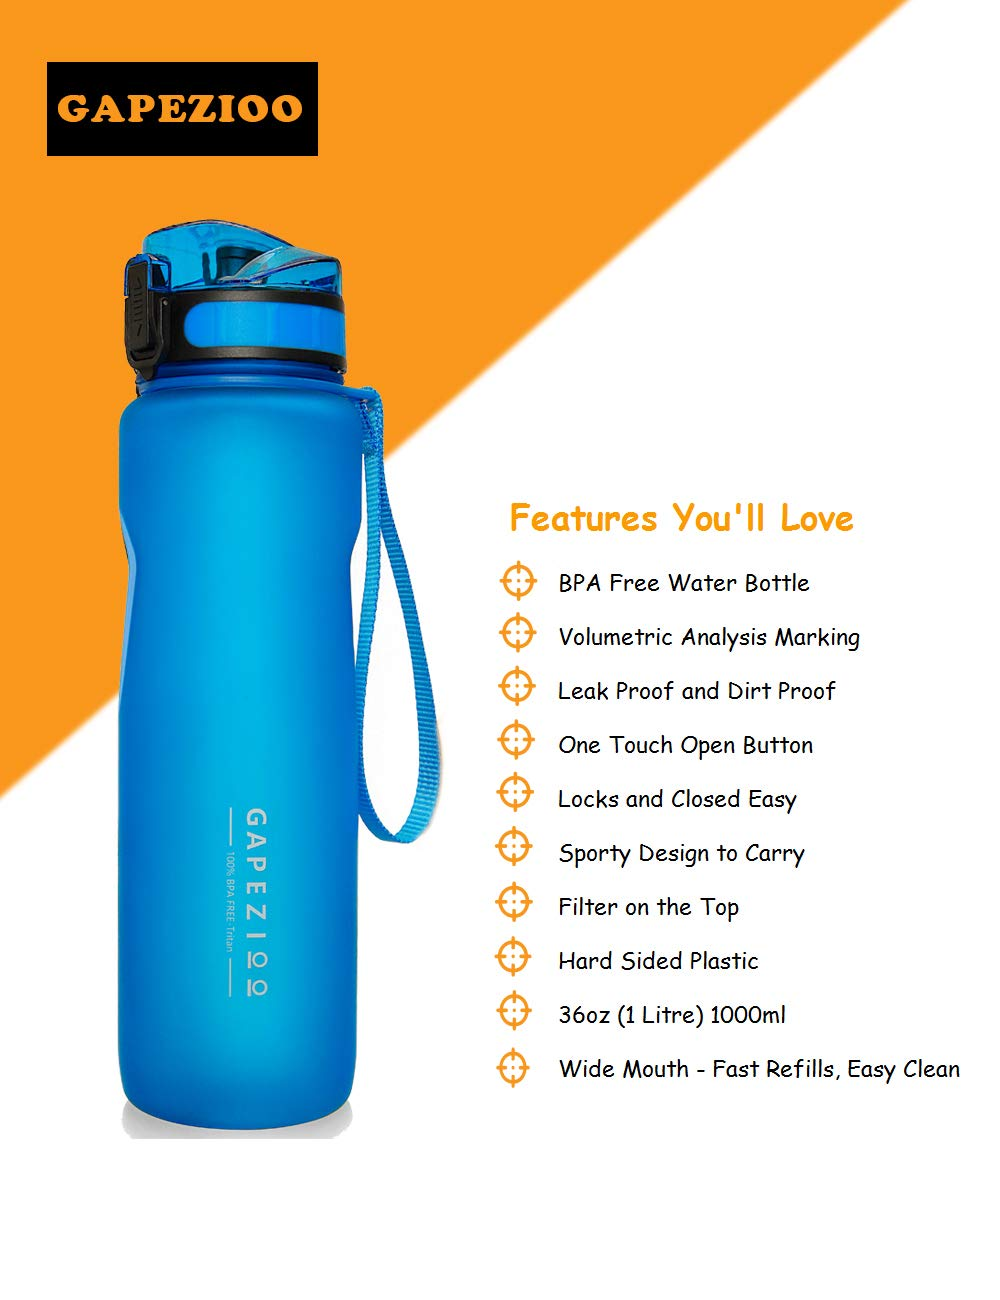 Gapezioo Best 36oz Leak Proof Water Bottle with Filter and Brush BPA Free Non-Toxic Plastic